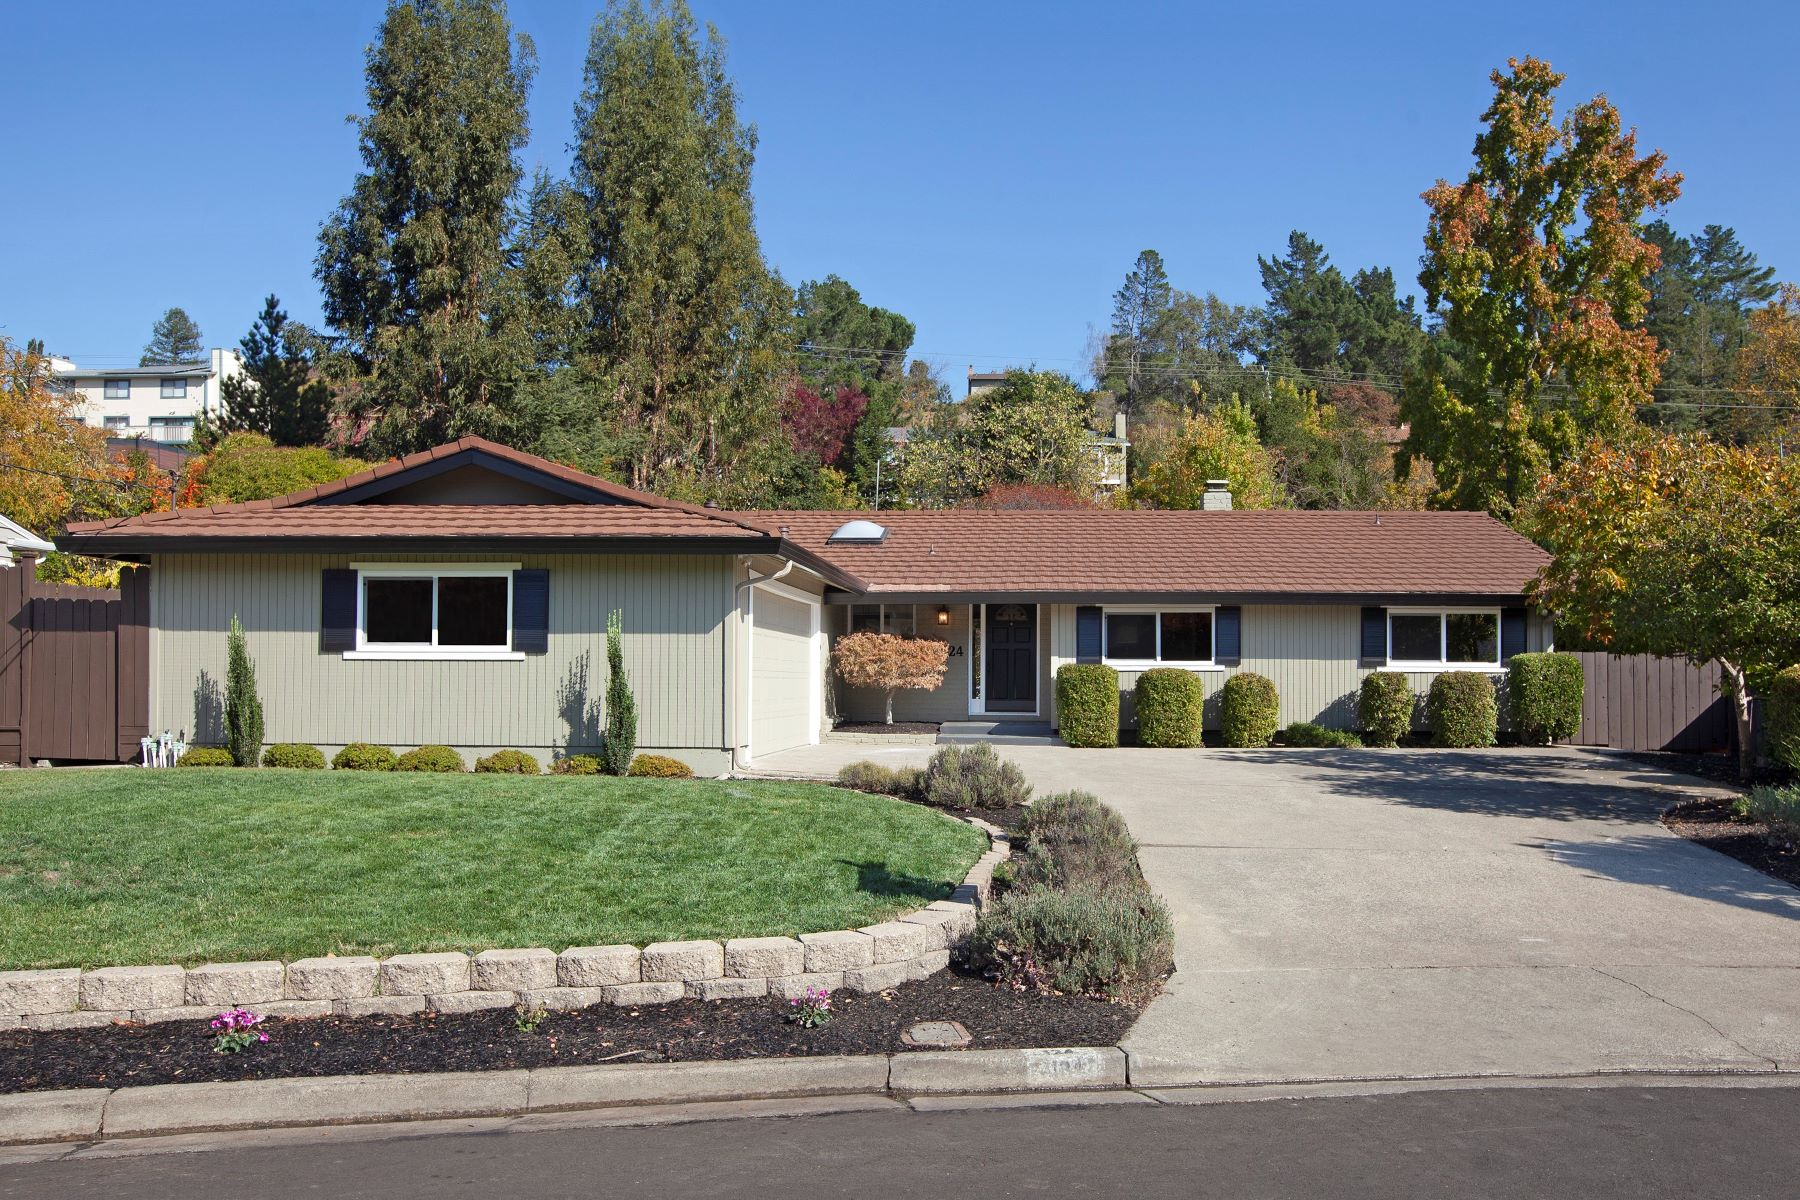 Single Family Homes for Sale at Immaculate Turn-Key Home 124 Walford Drive Moraga, California 94556 United States